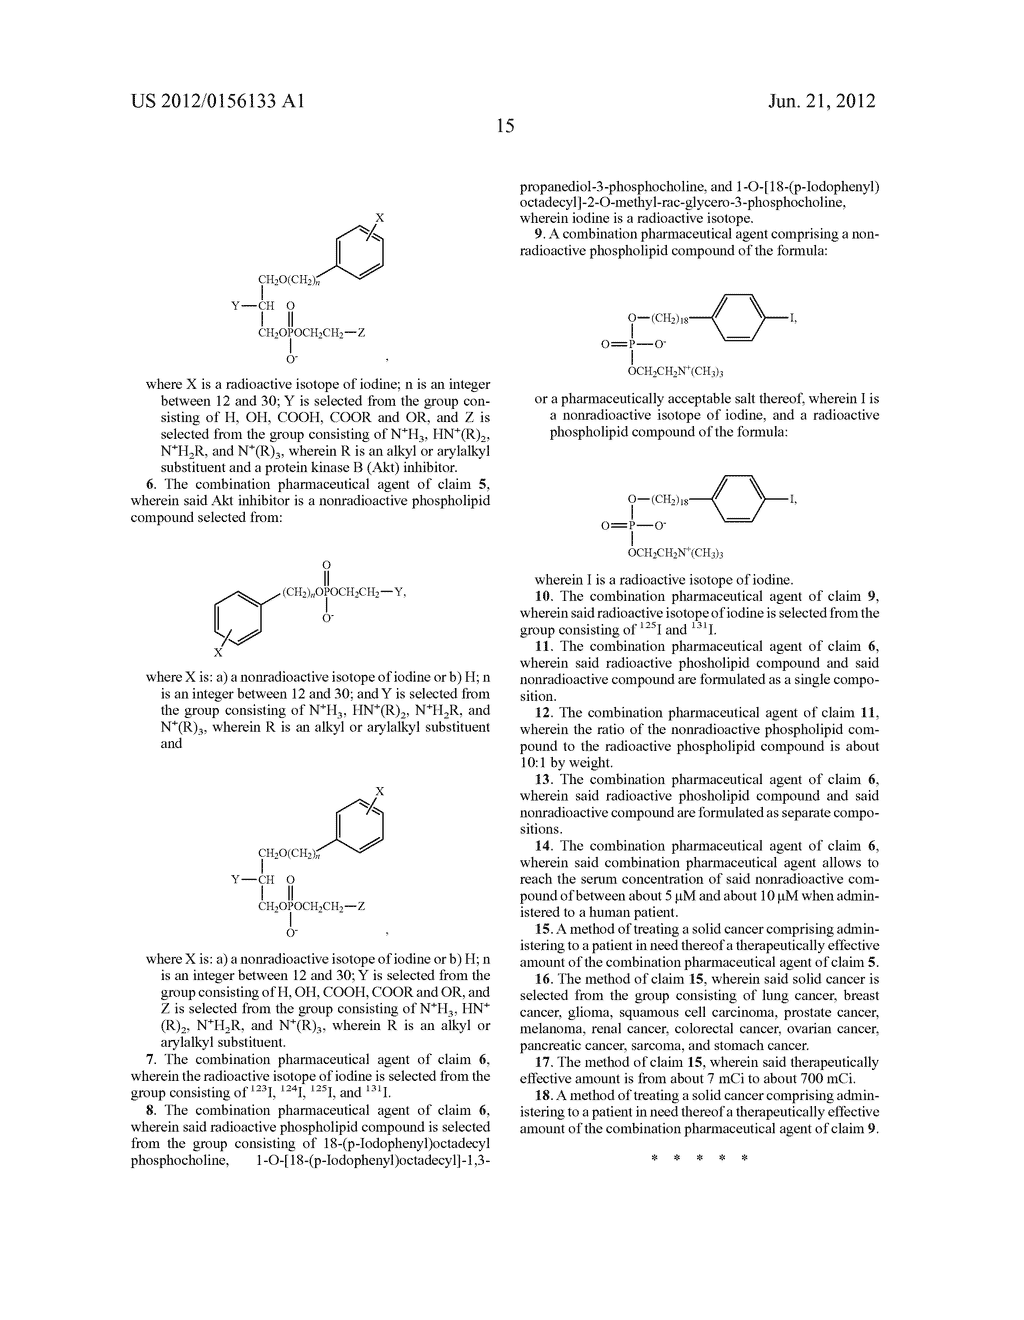 NON-RADIOACTIVE PHOSPHOLIPID COMPOUNDS, COMPOSITIONS, AND METHODS OF USE - diagram, schematic, and image 36